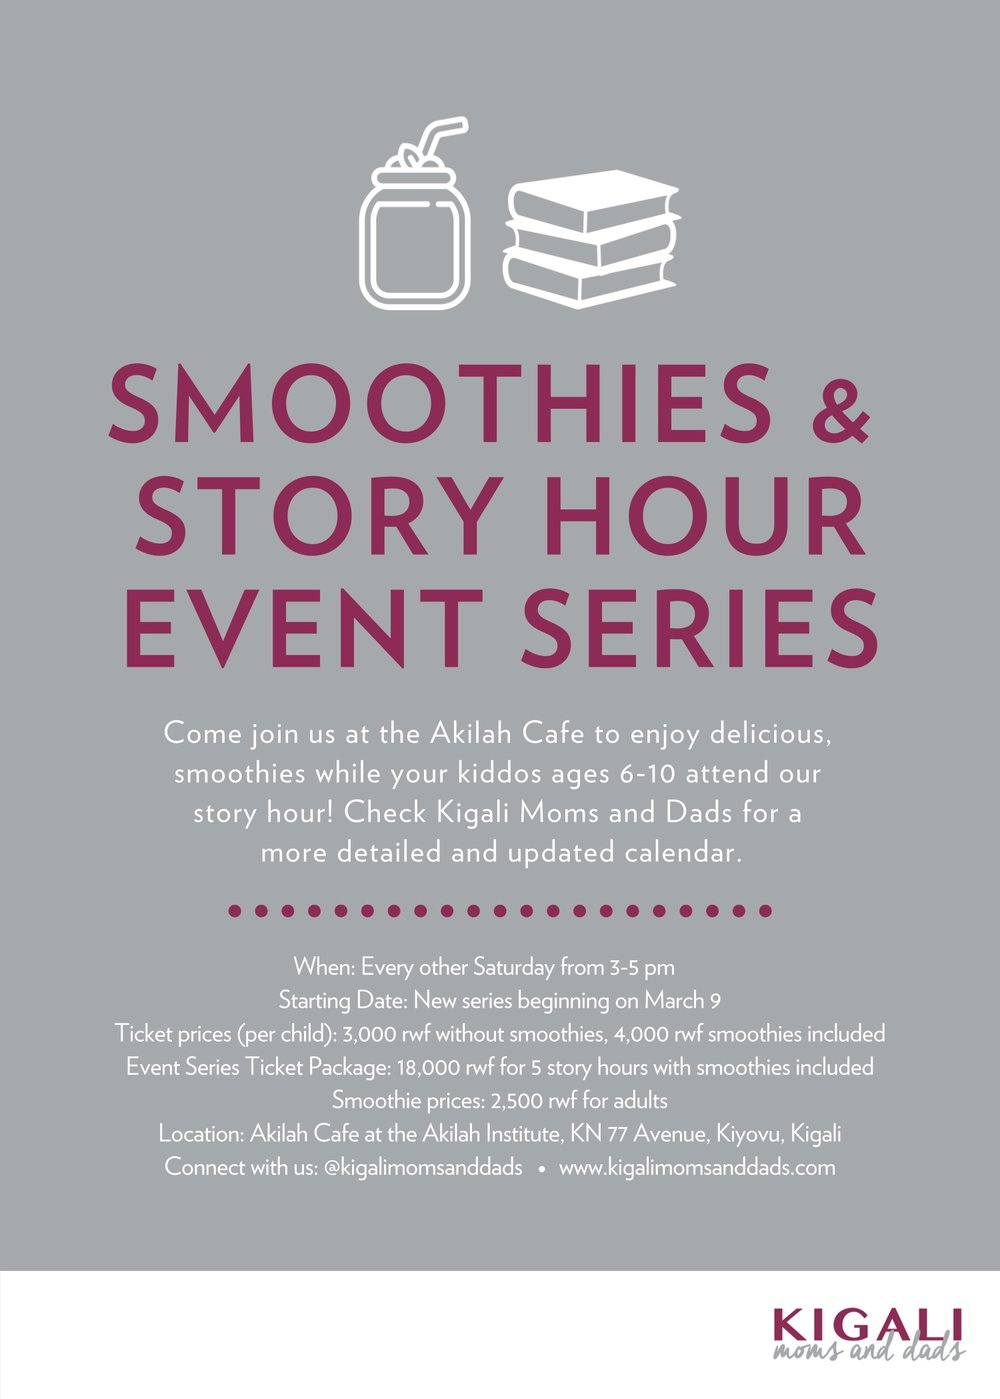 Smoothies & Story Event.jpg